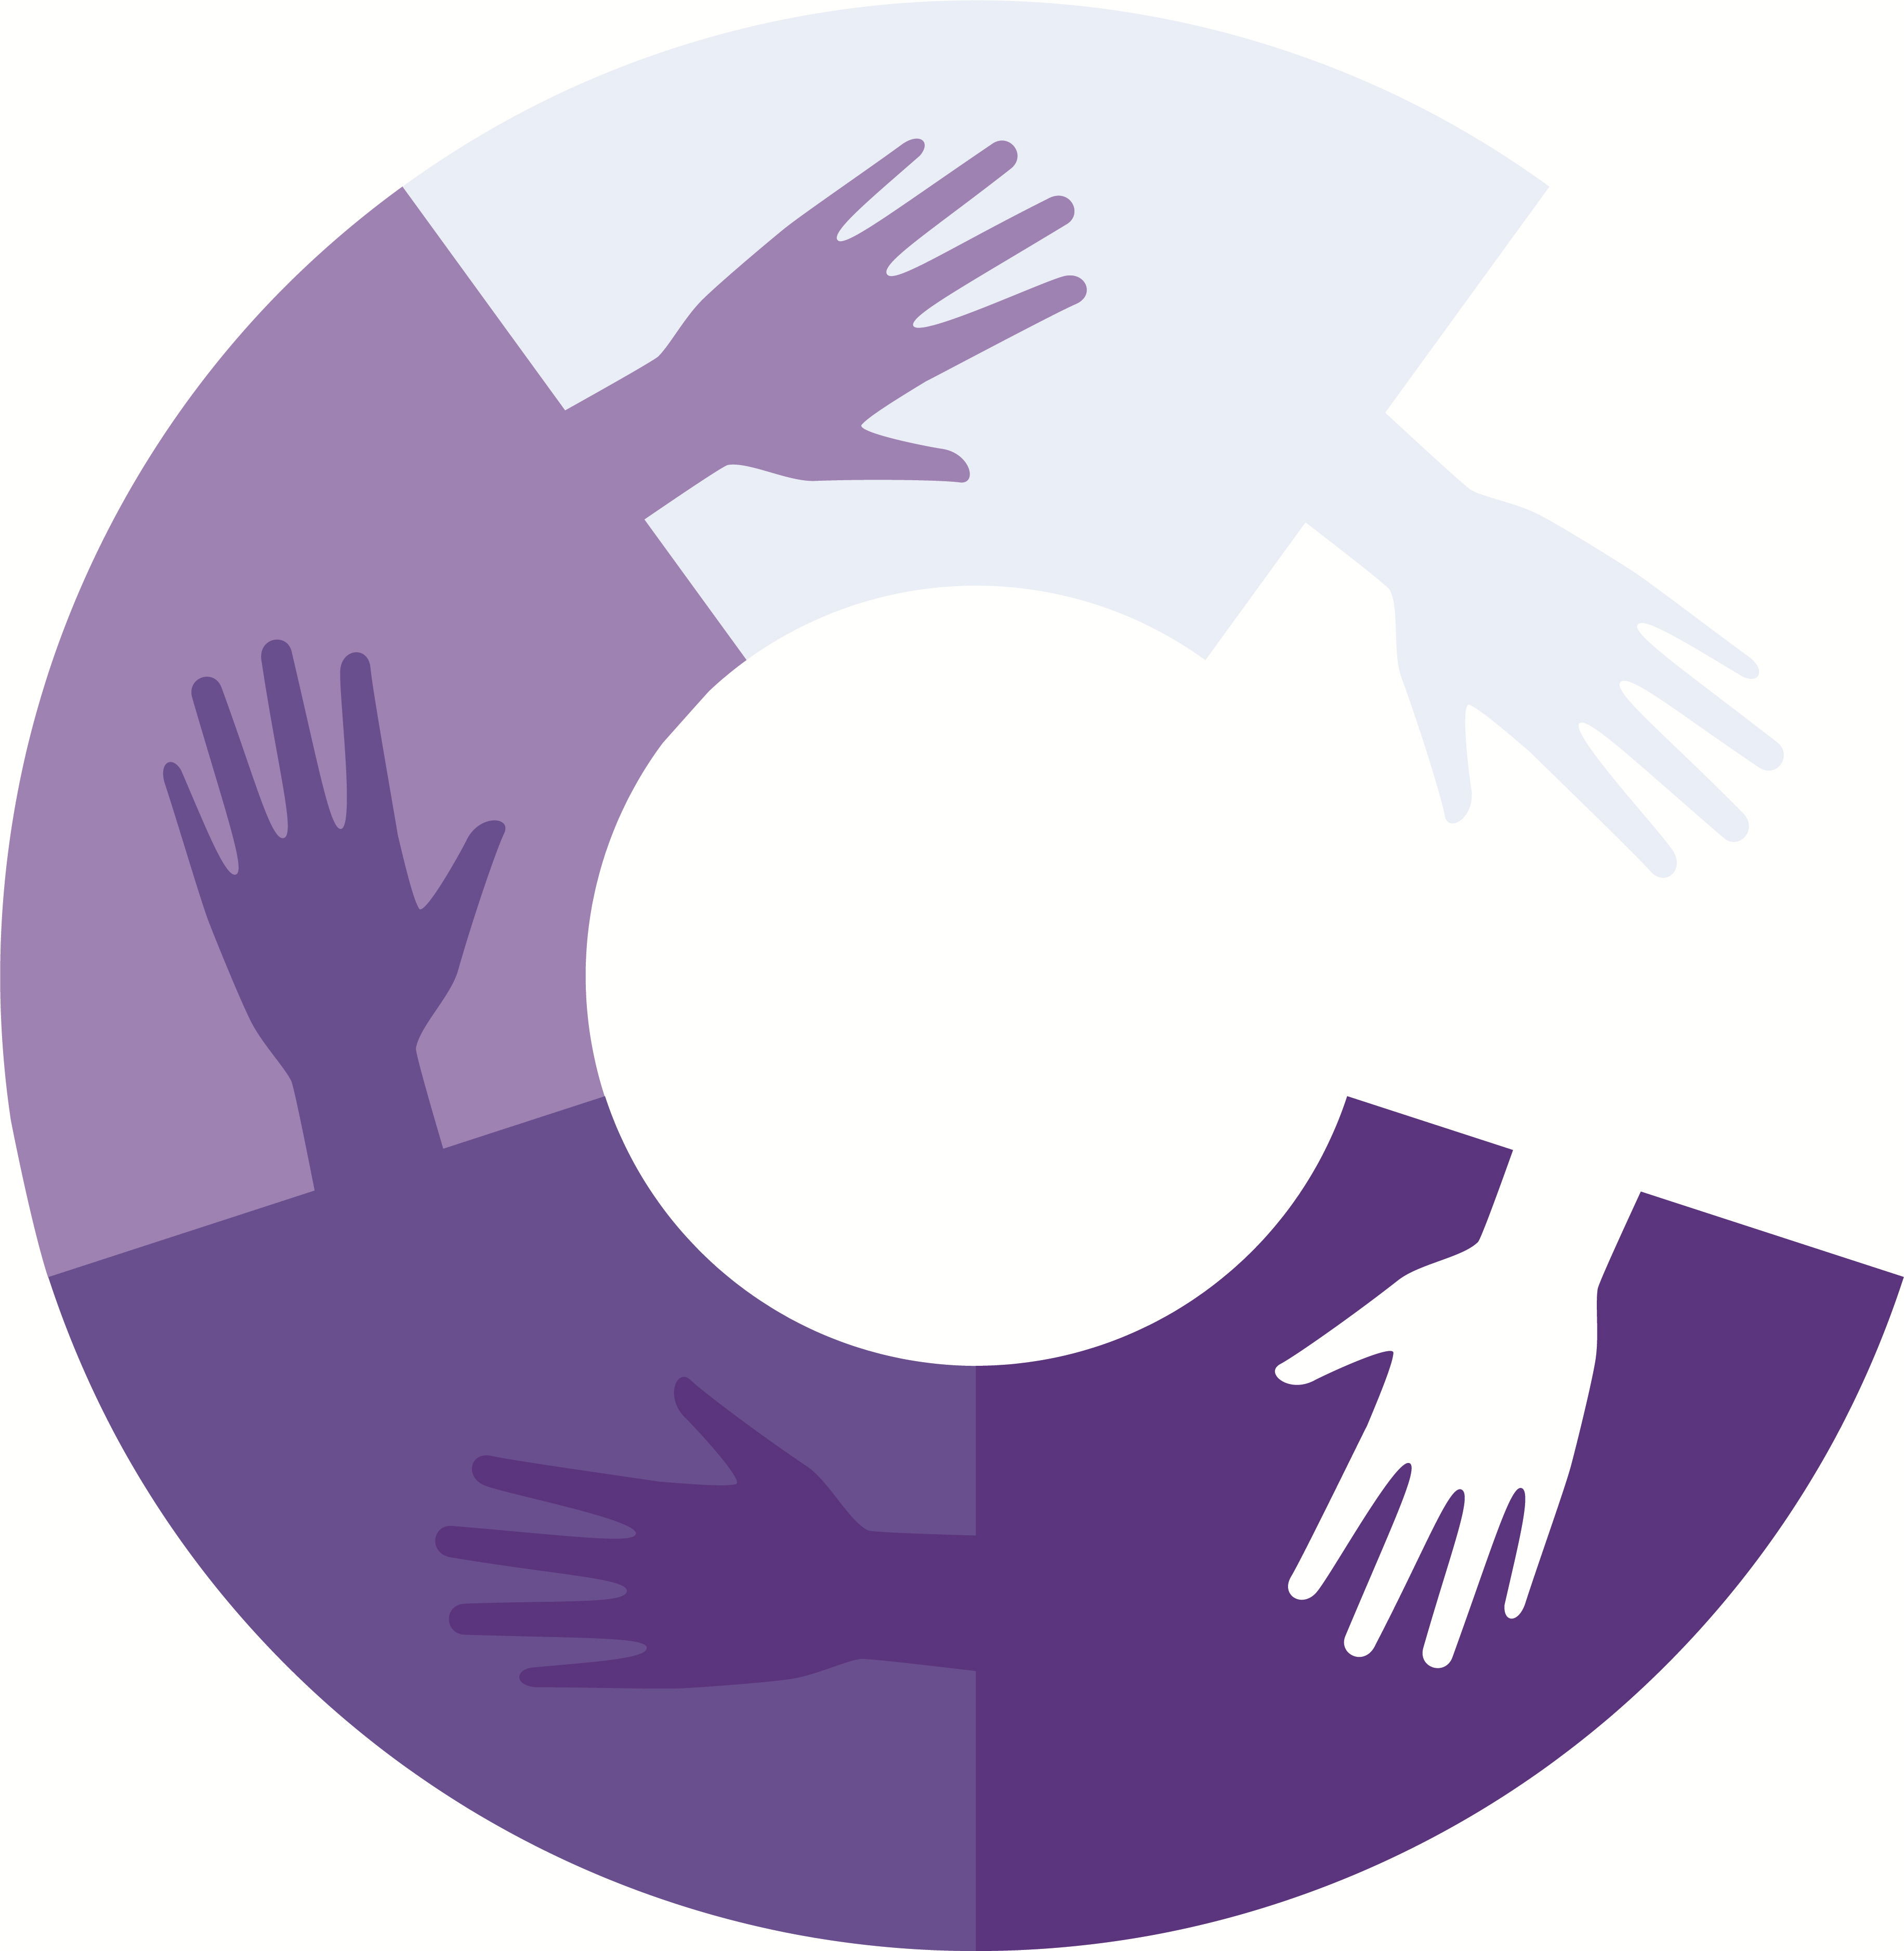 co-production logo - purple hands linked in circle